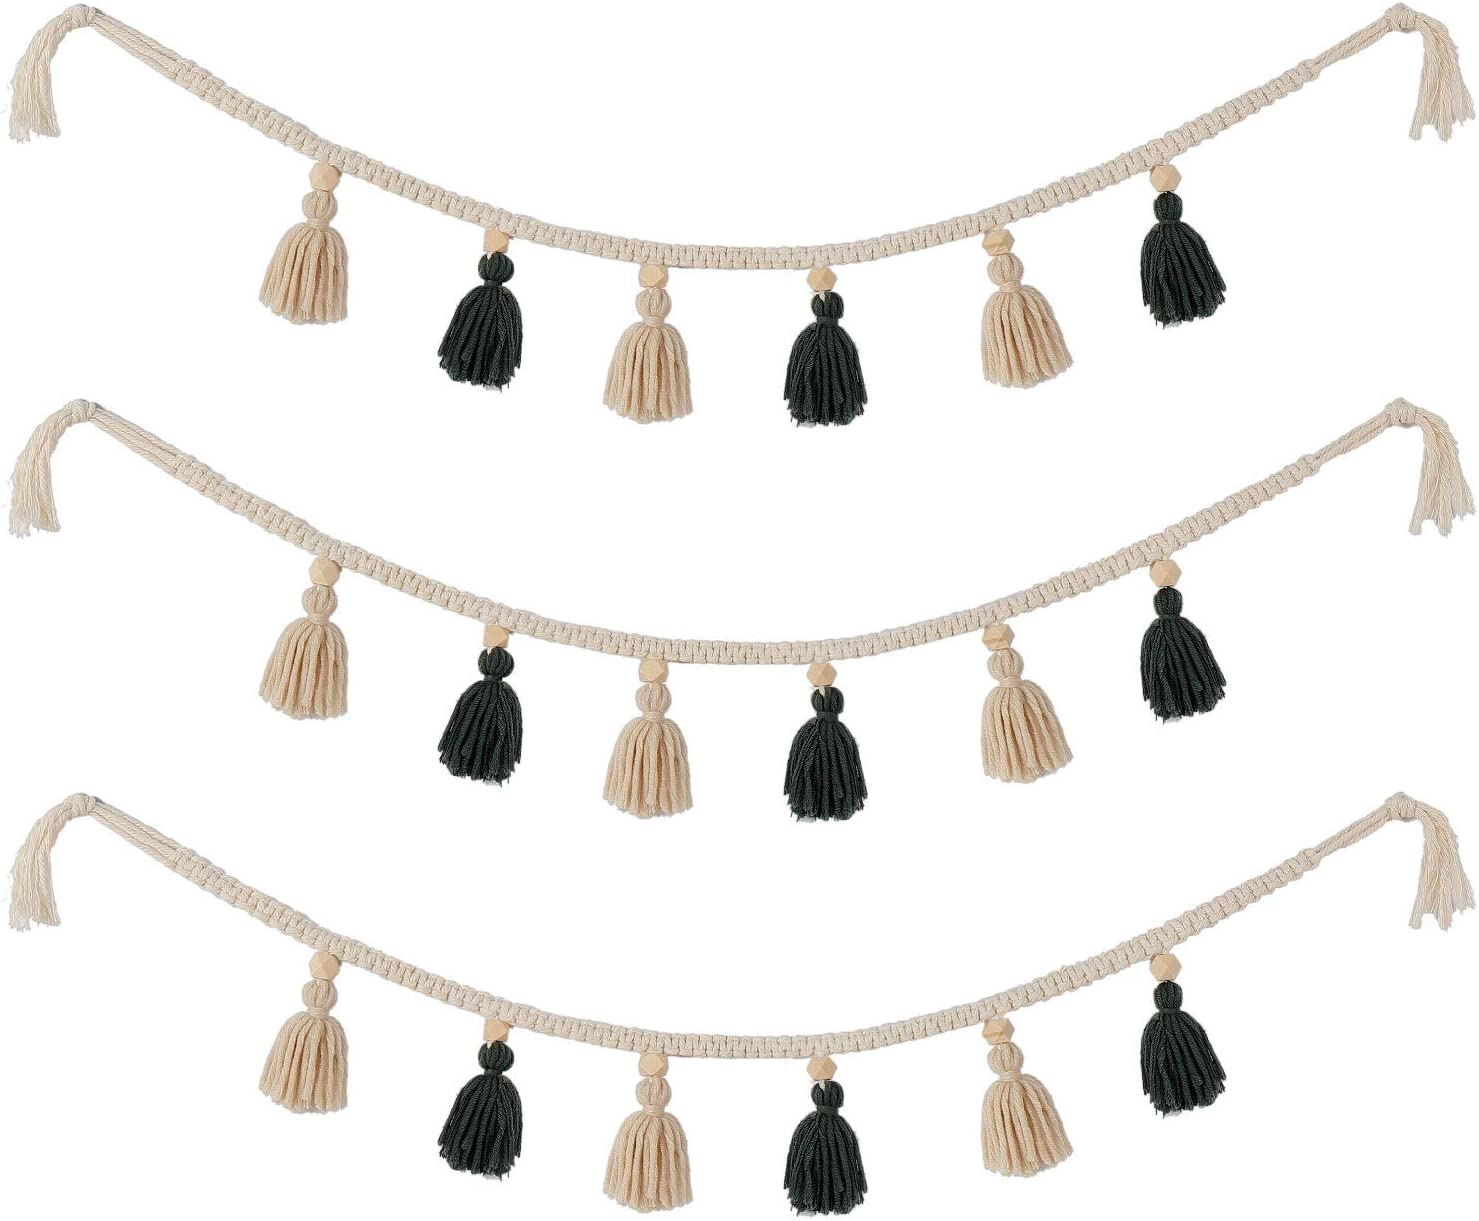 WILLBOND 3 Pieces Macrame Woven Tassel Garland Cotton Tassel Garland Backdrop Decorative Wall Hangings for Boho Home Nursery Room Decor (White and Green)